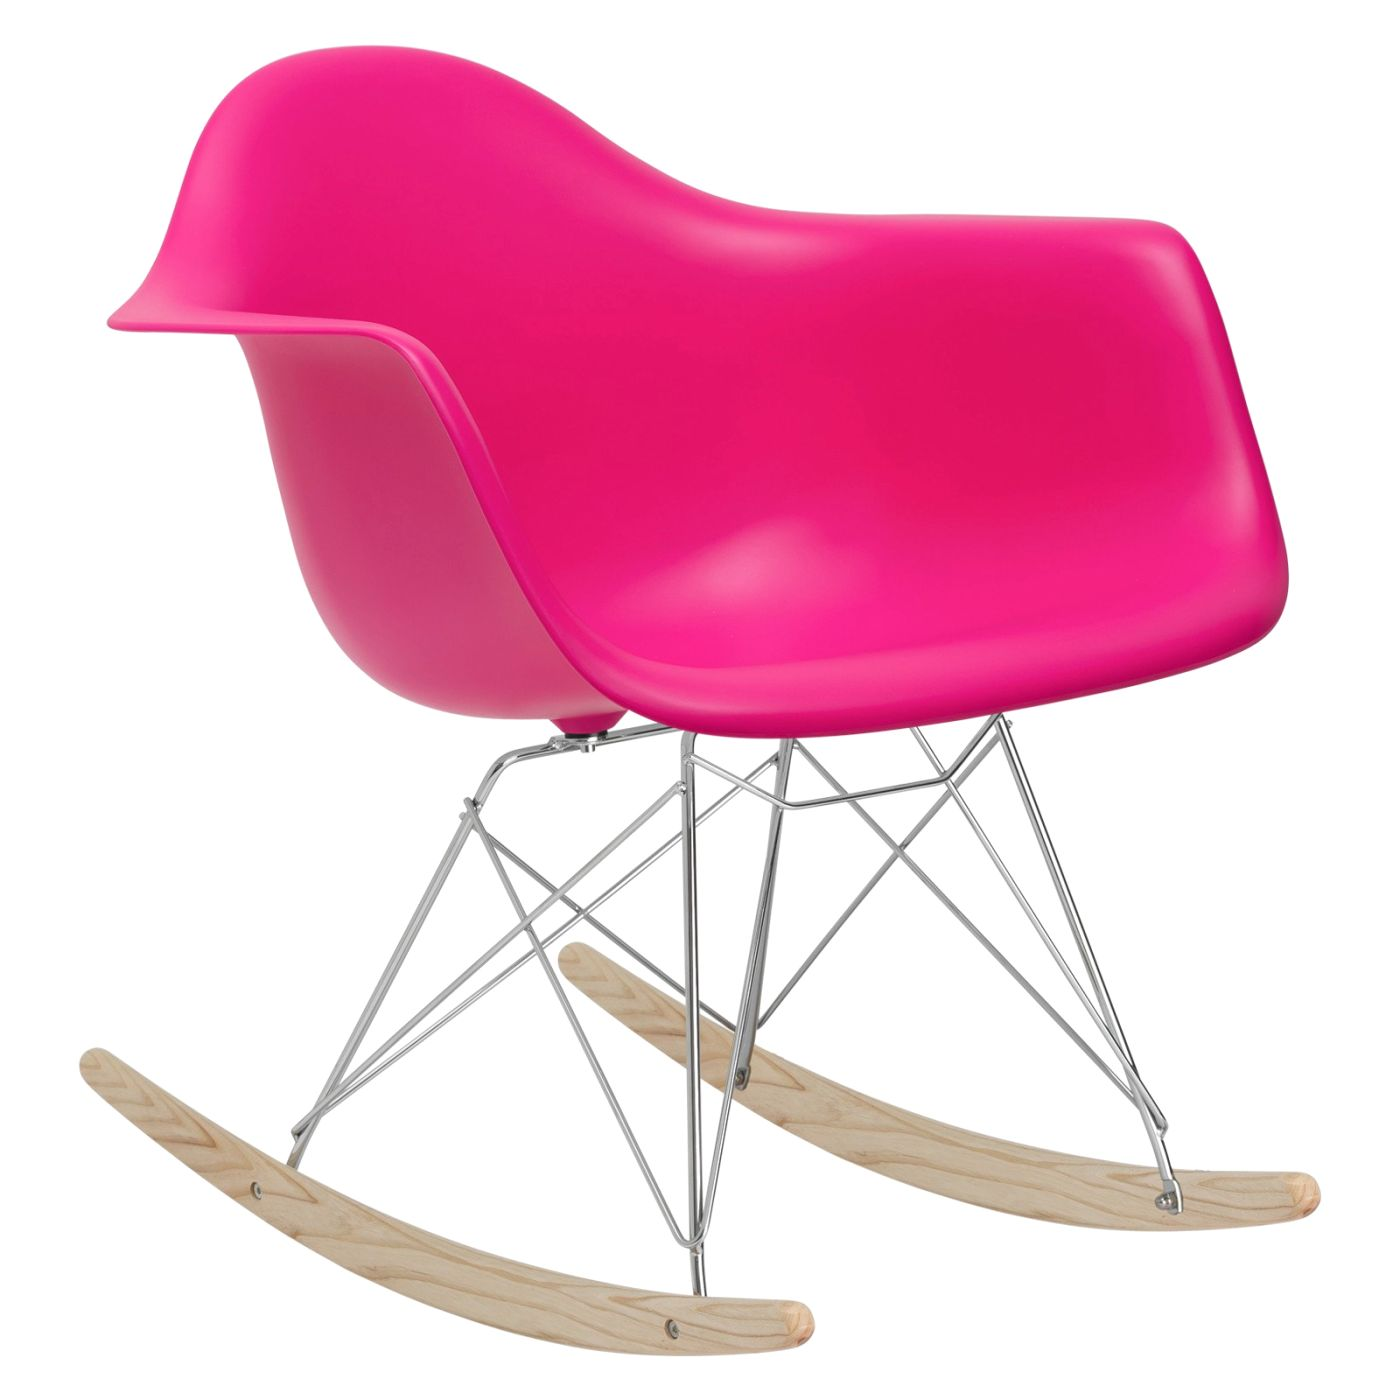 Merveilleux Fuchsia Chairs At Contemporary Furniture Warehouse | Dining Chairs, Rocking  Chairs